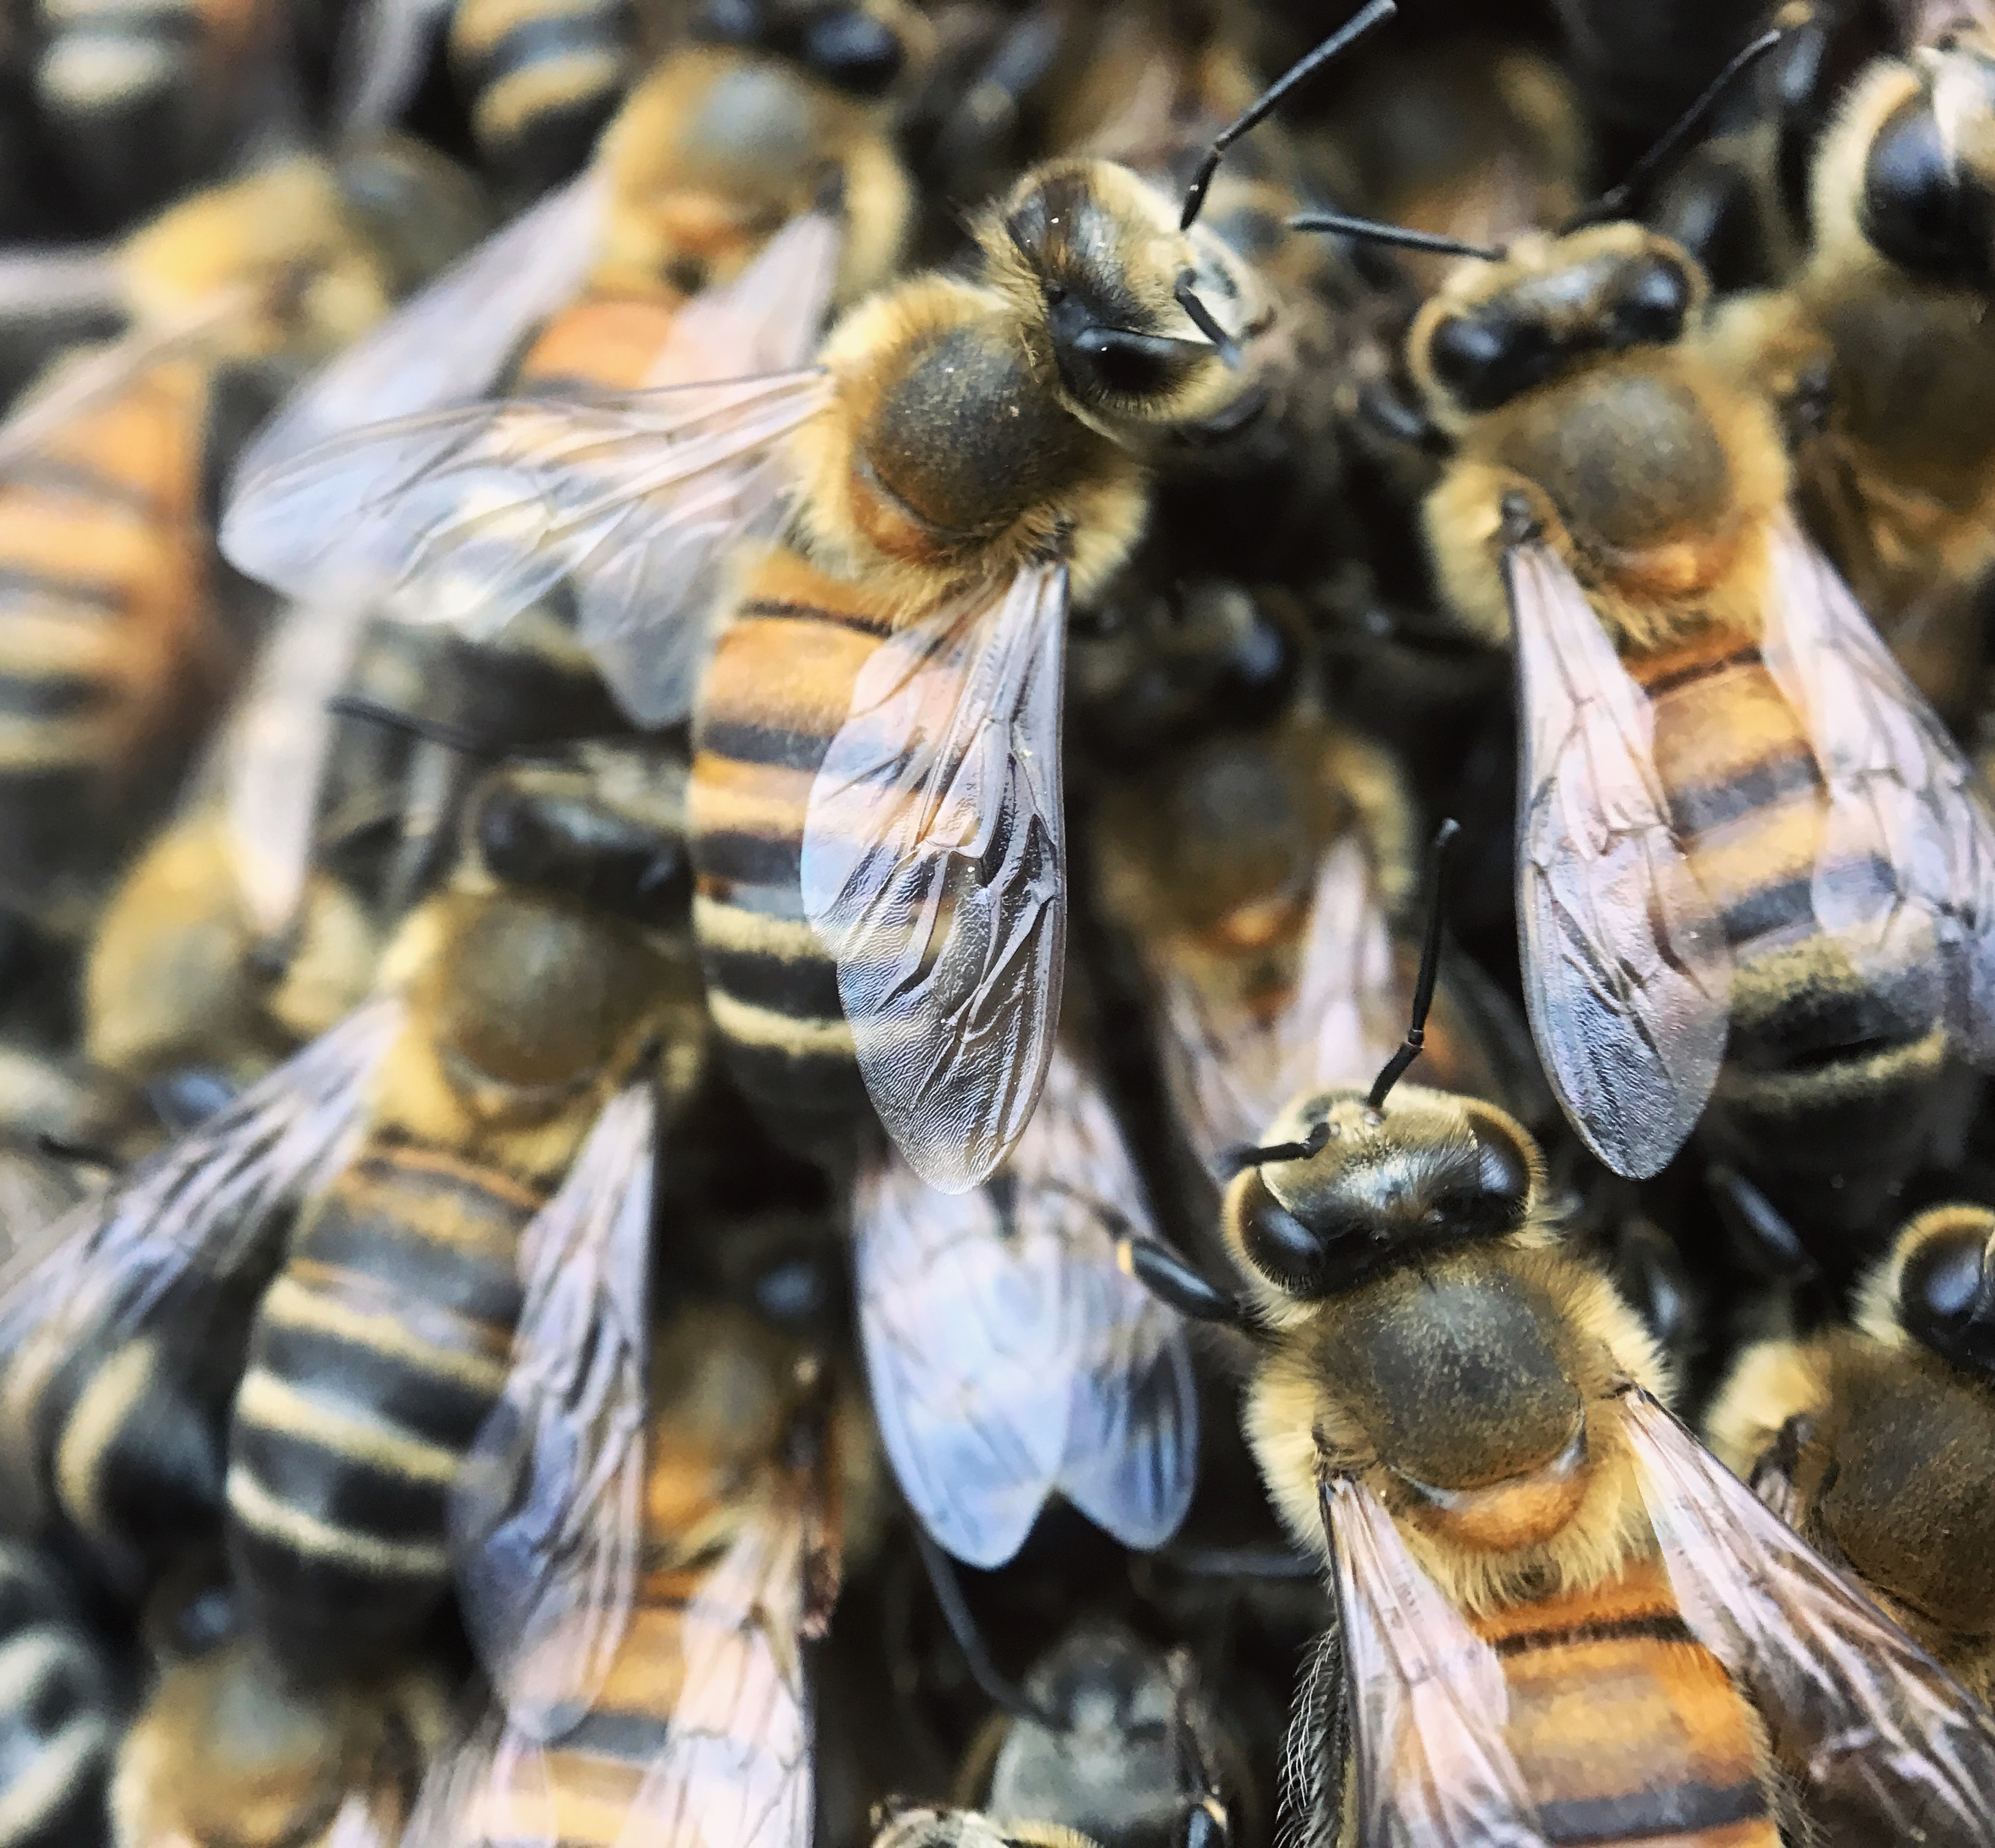 Why the Bees Are Dying